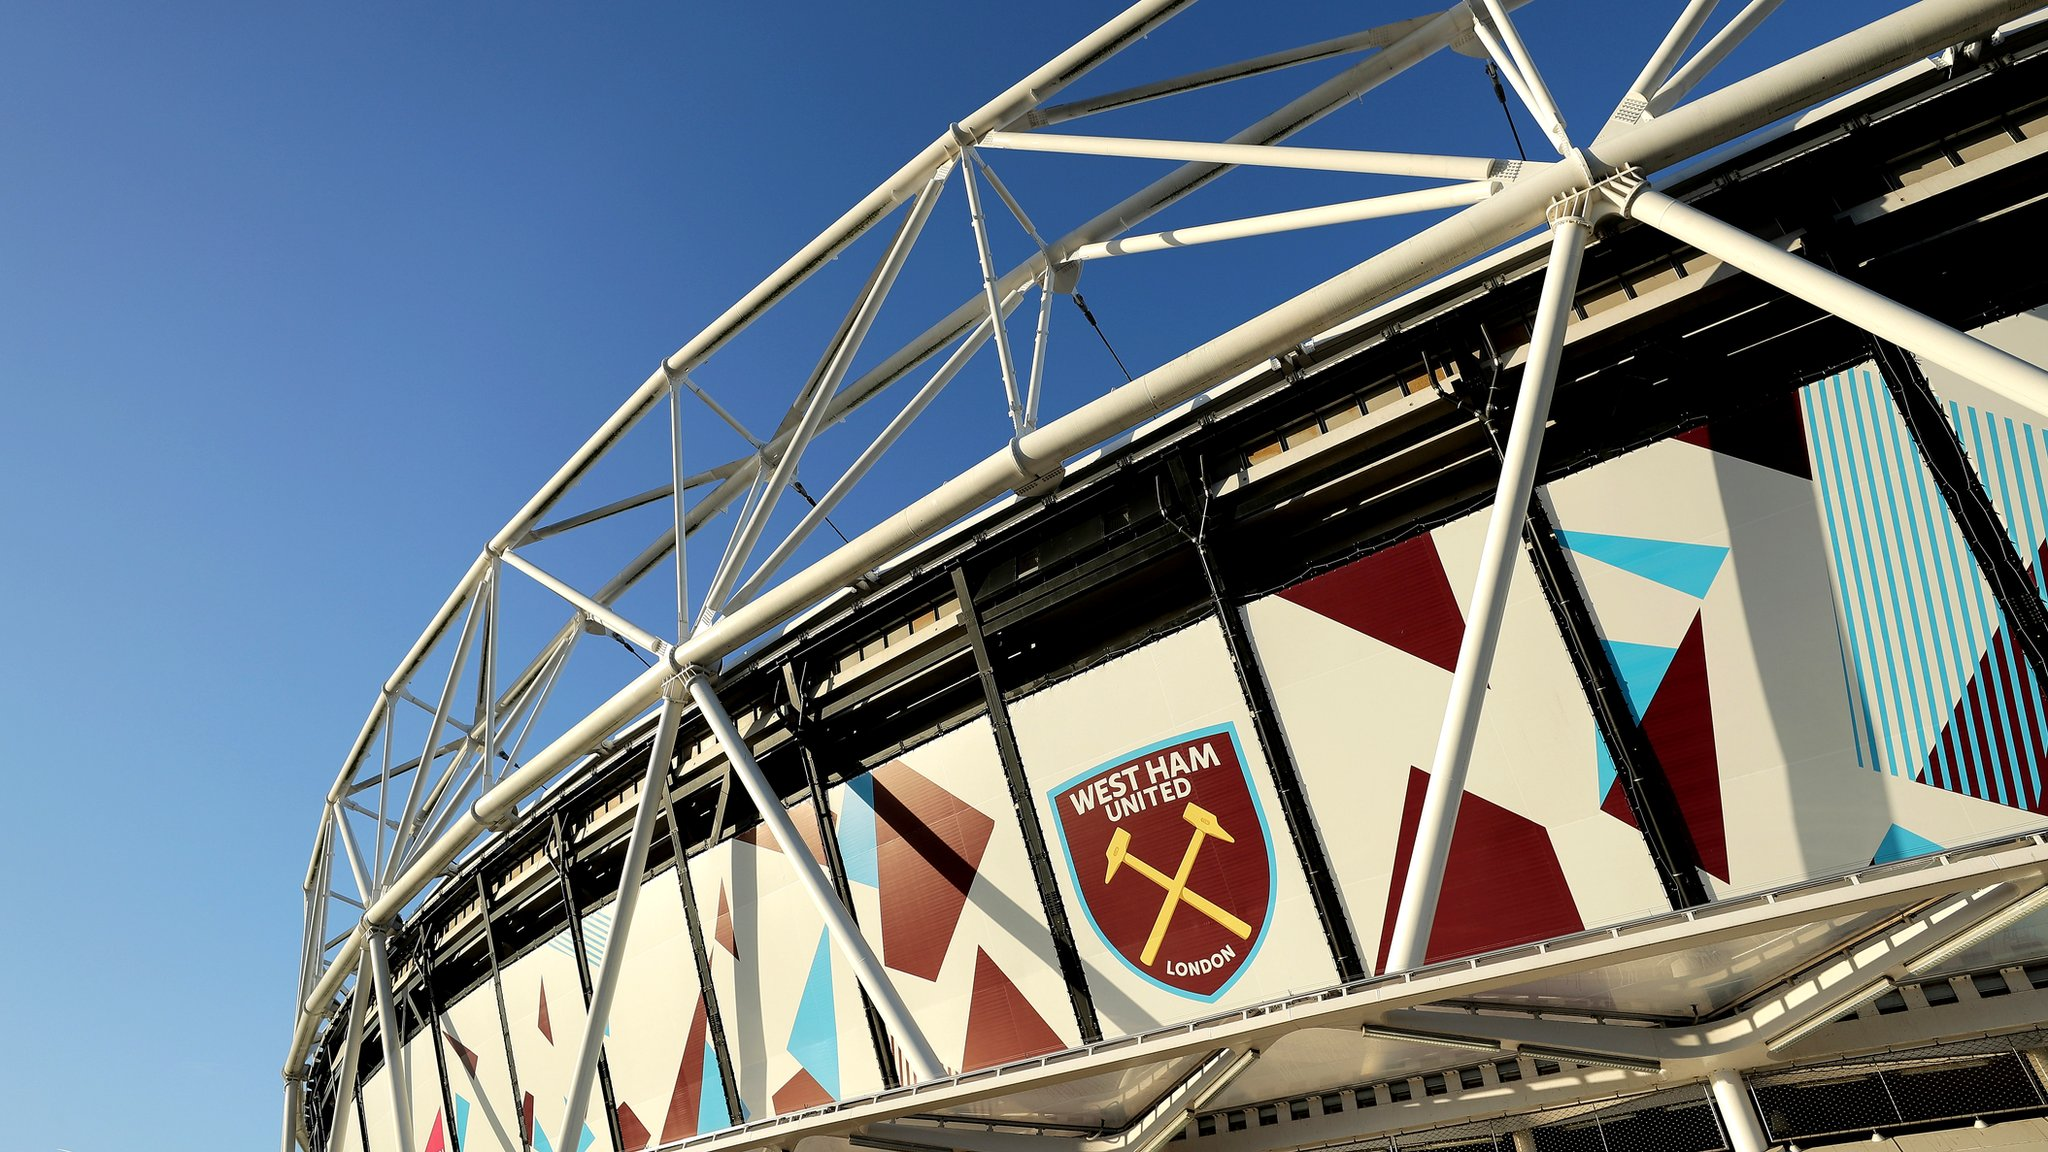 Shuttle buses, tea troubles and pitch problems – has West Ham's move failed?